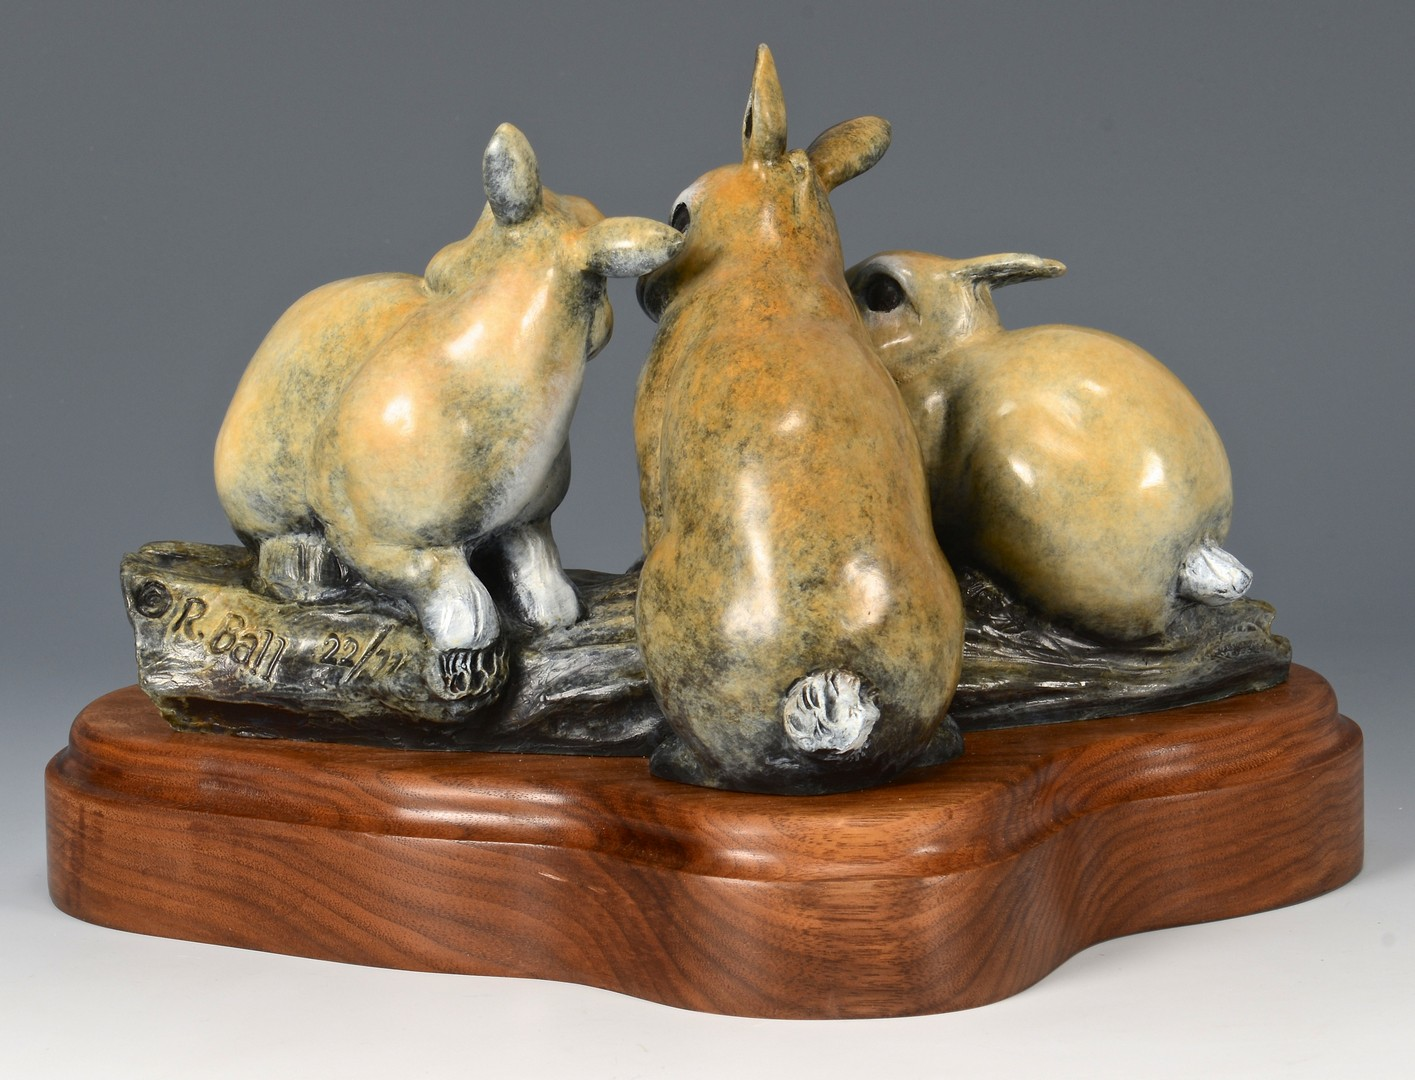 Lot 3832445: 2 Robert Ball Bronze Sculptures